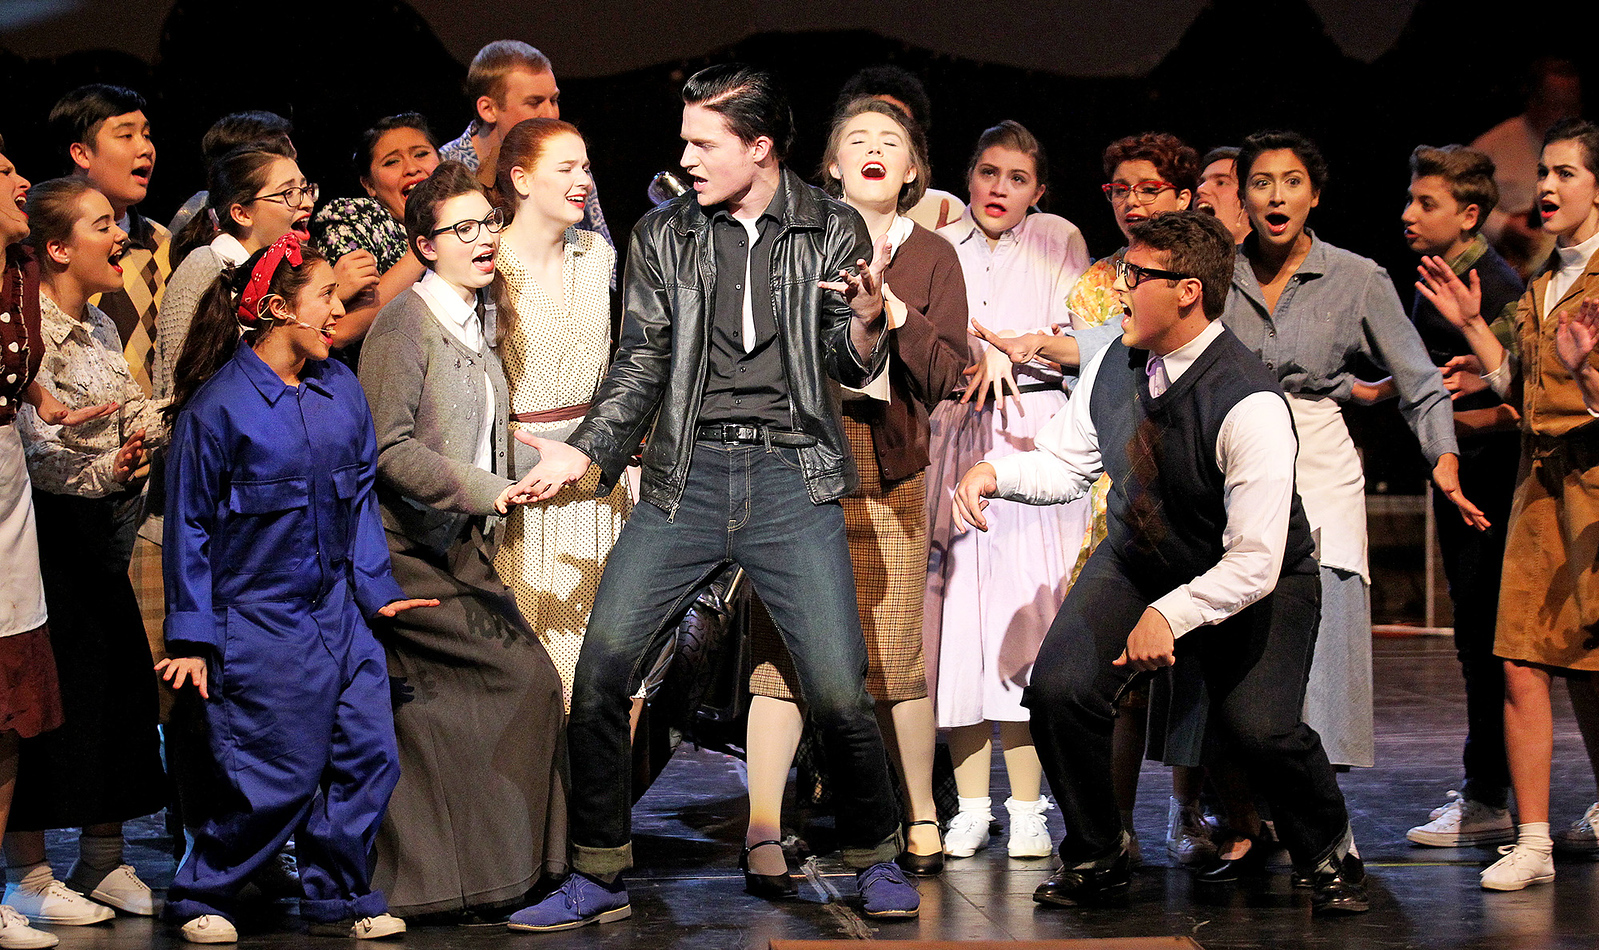 LCJ_1116_Wauc_All_Shook_Up_C